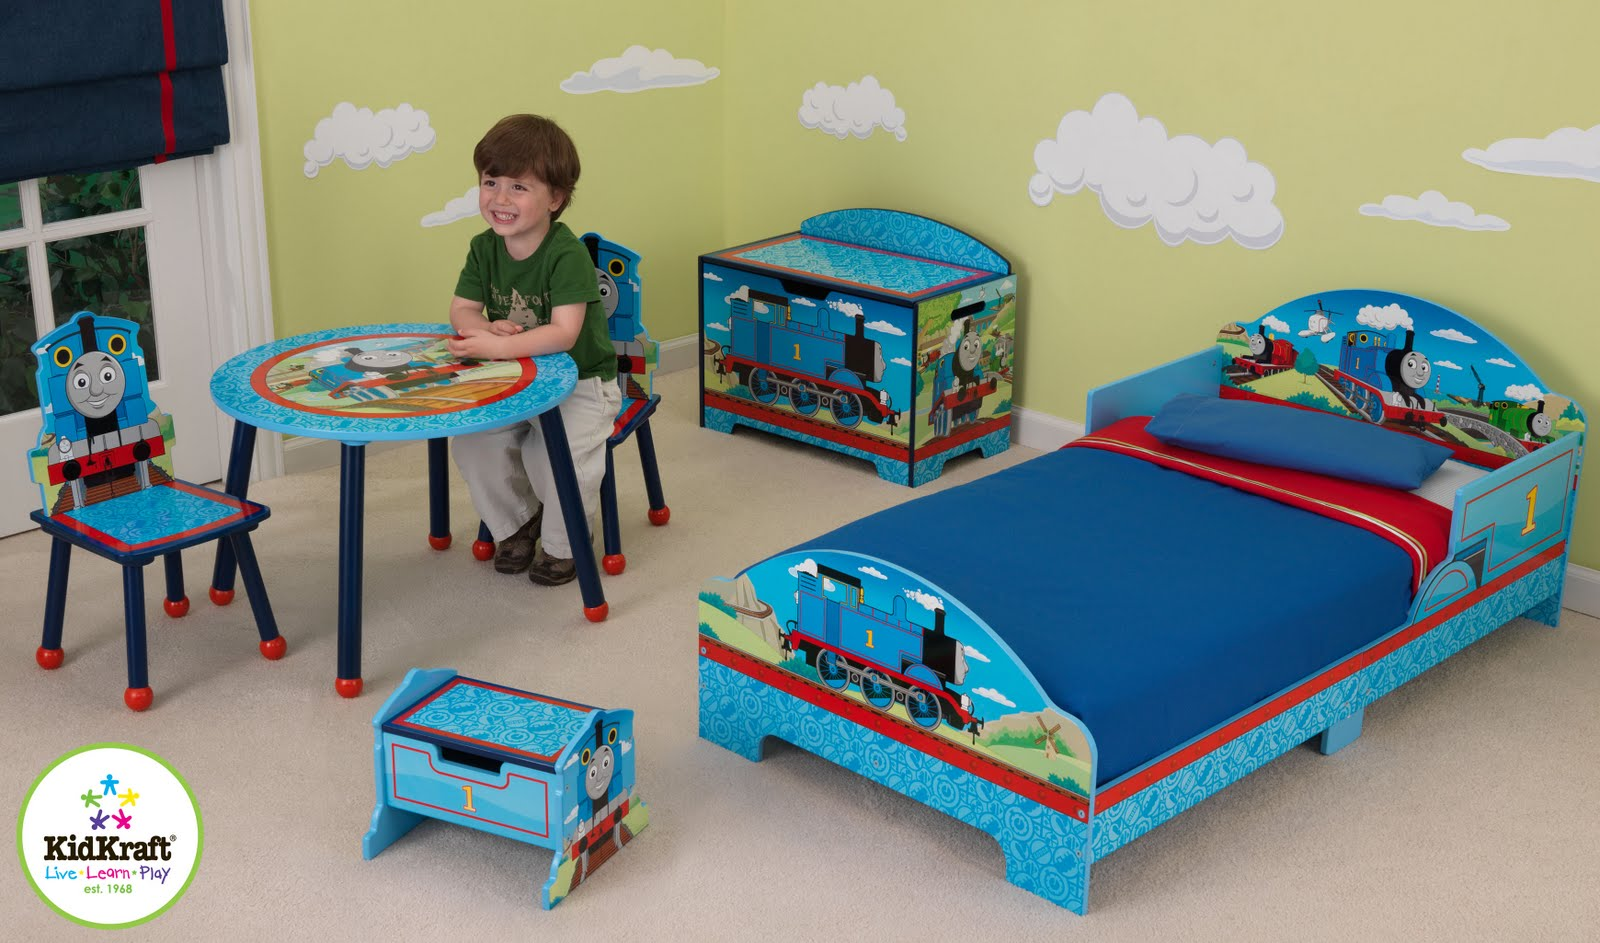 Marvellous Kidkraft Thomas And Friends Table And Chair Set & Breathtaking Thomas The Tank Engine Table And Chairs Contemporary ...